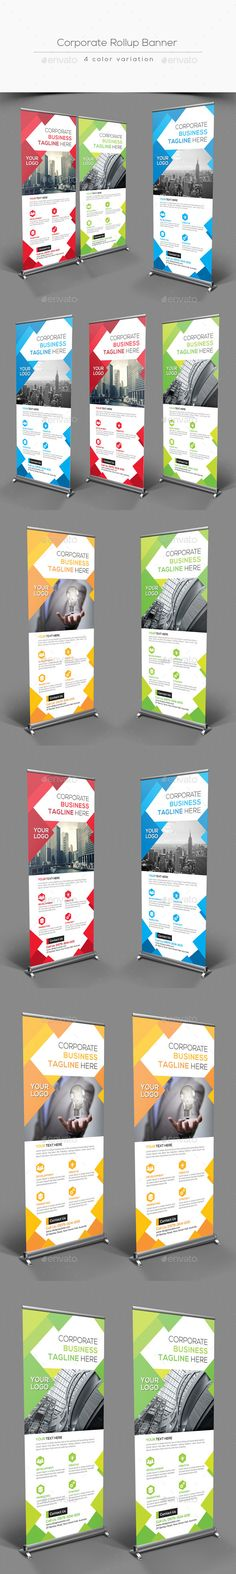 corporate rollup banner template psd design download http graphicriver net